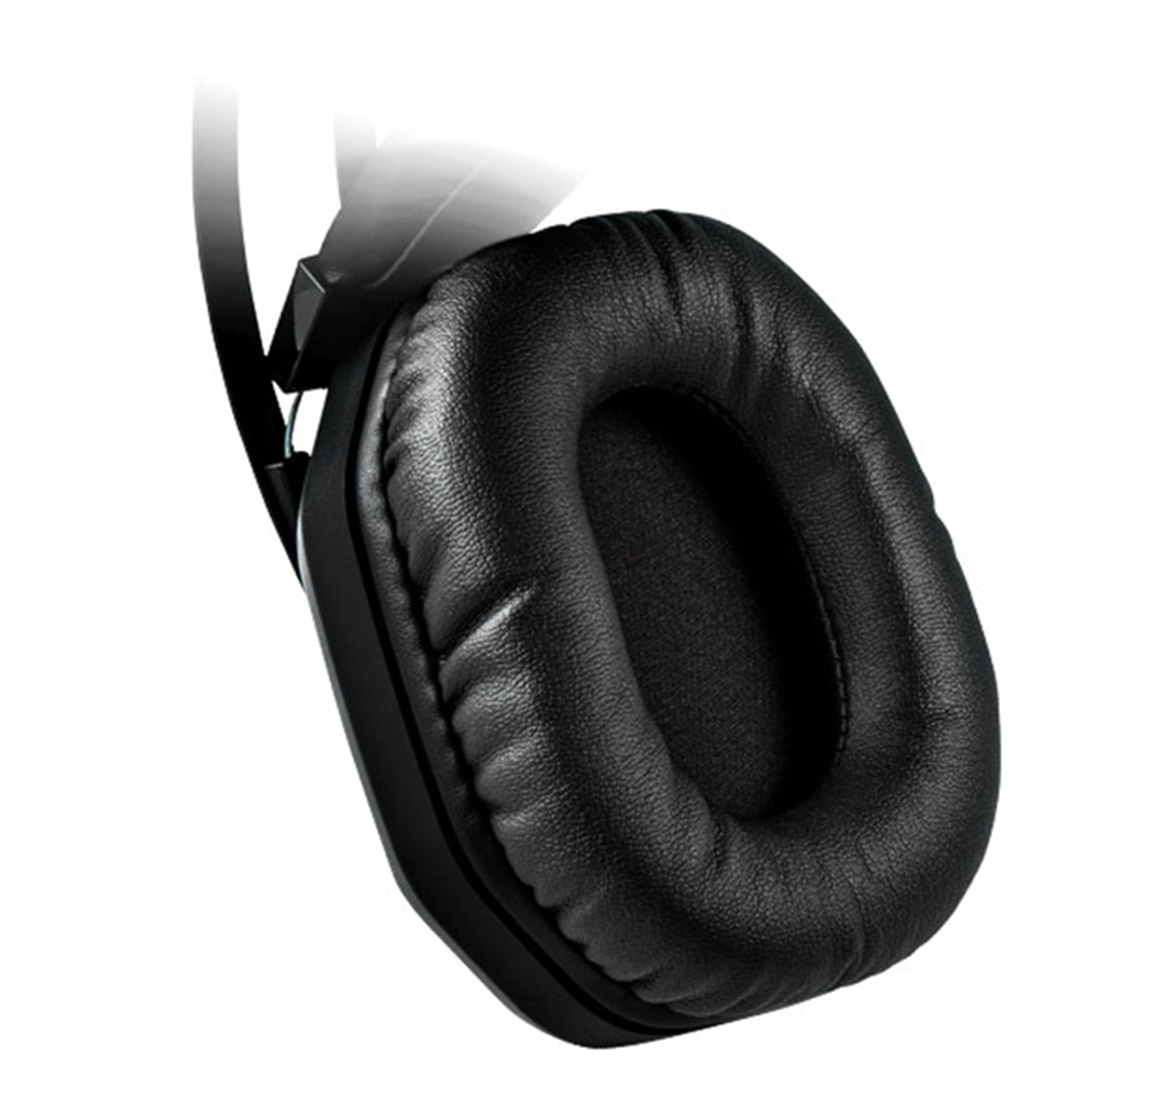 Closed-back Design With Leather Earcups